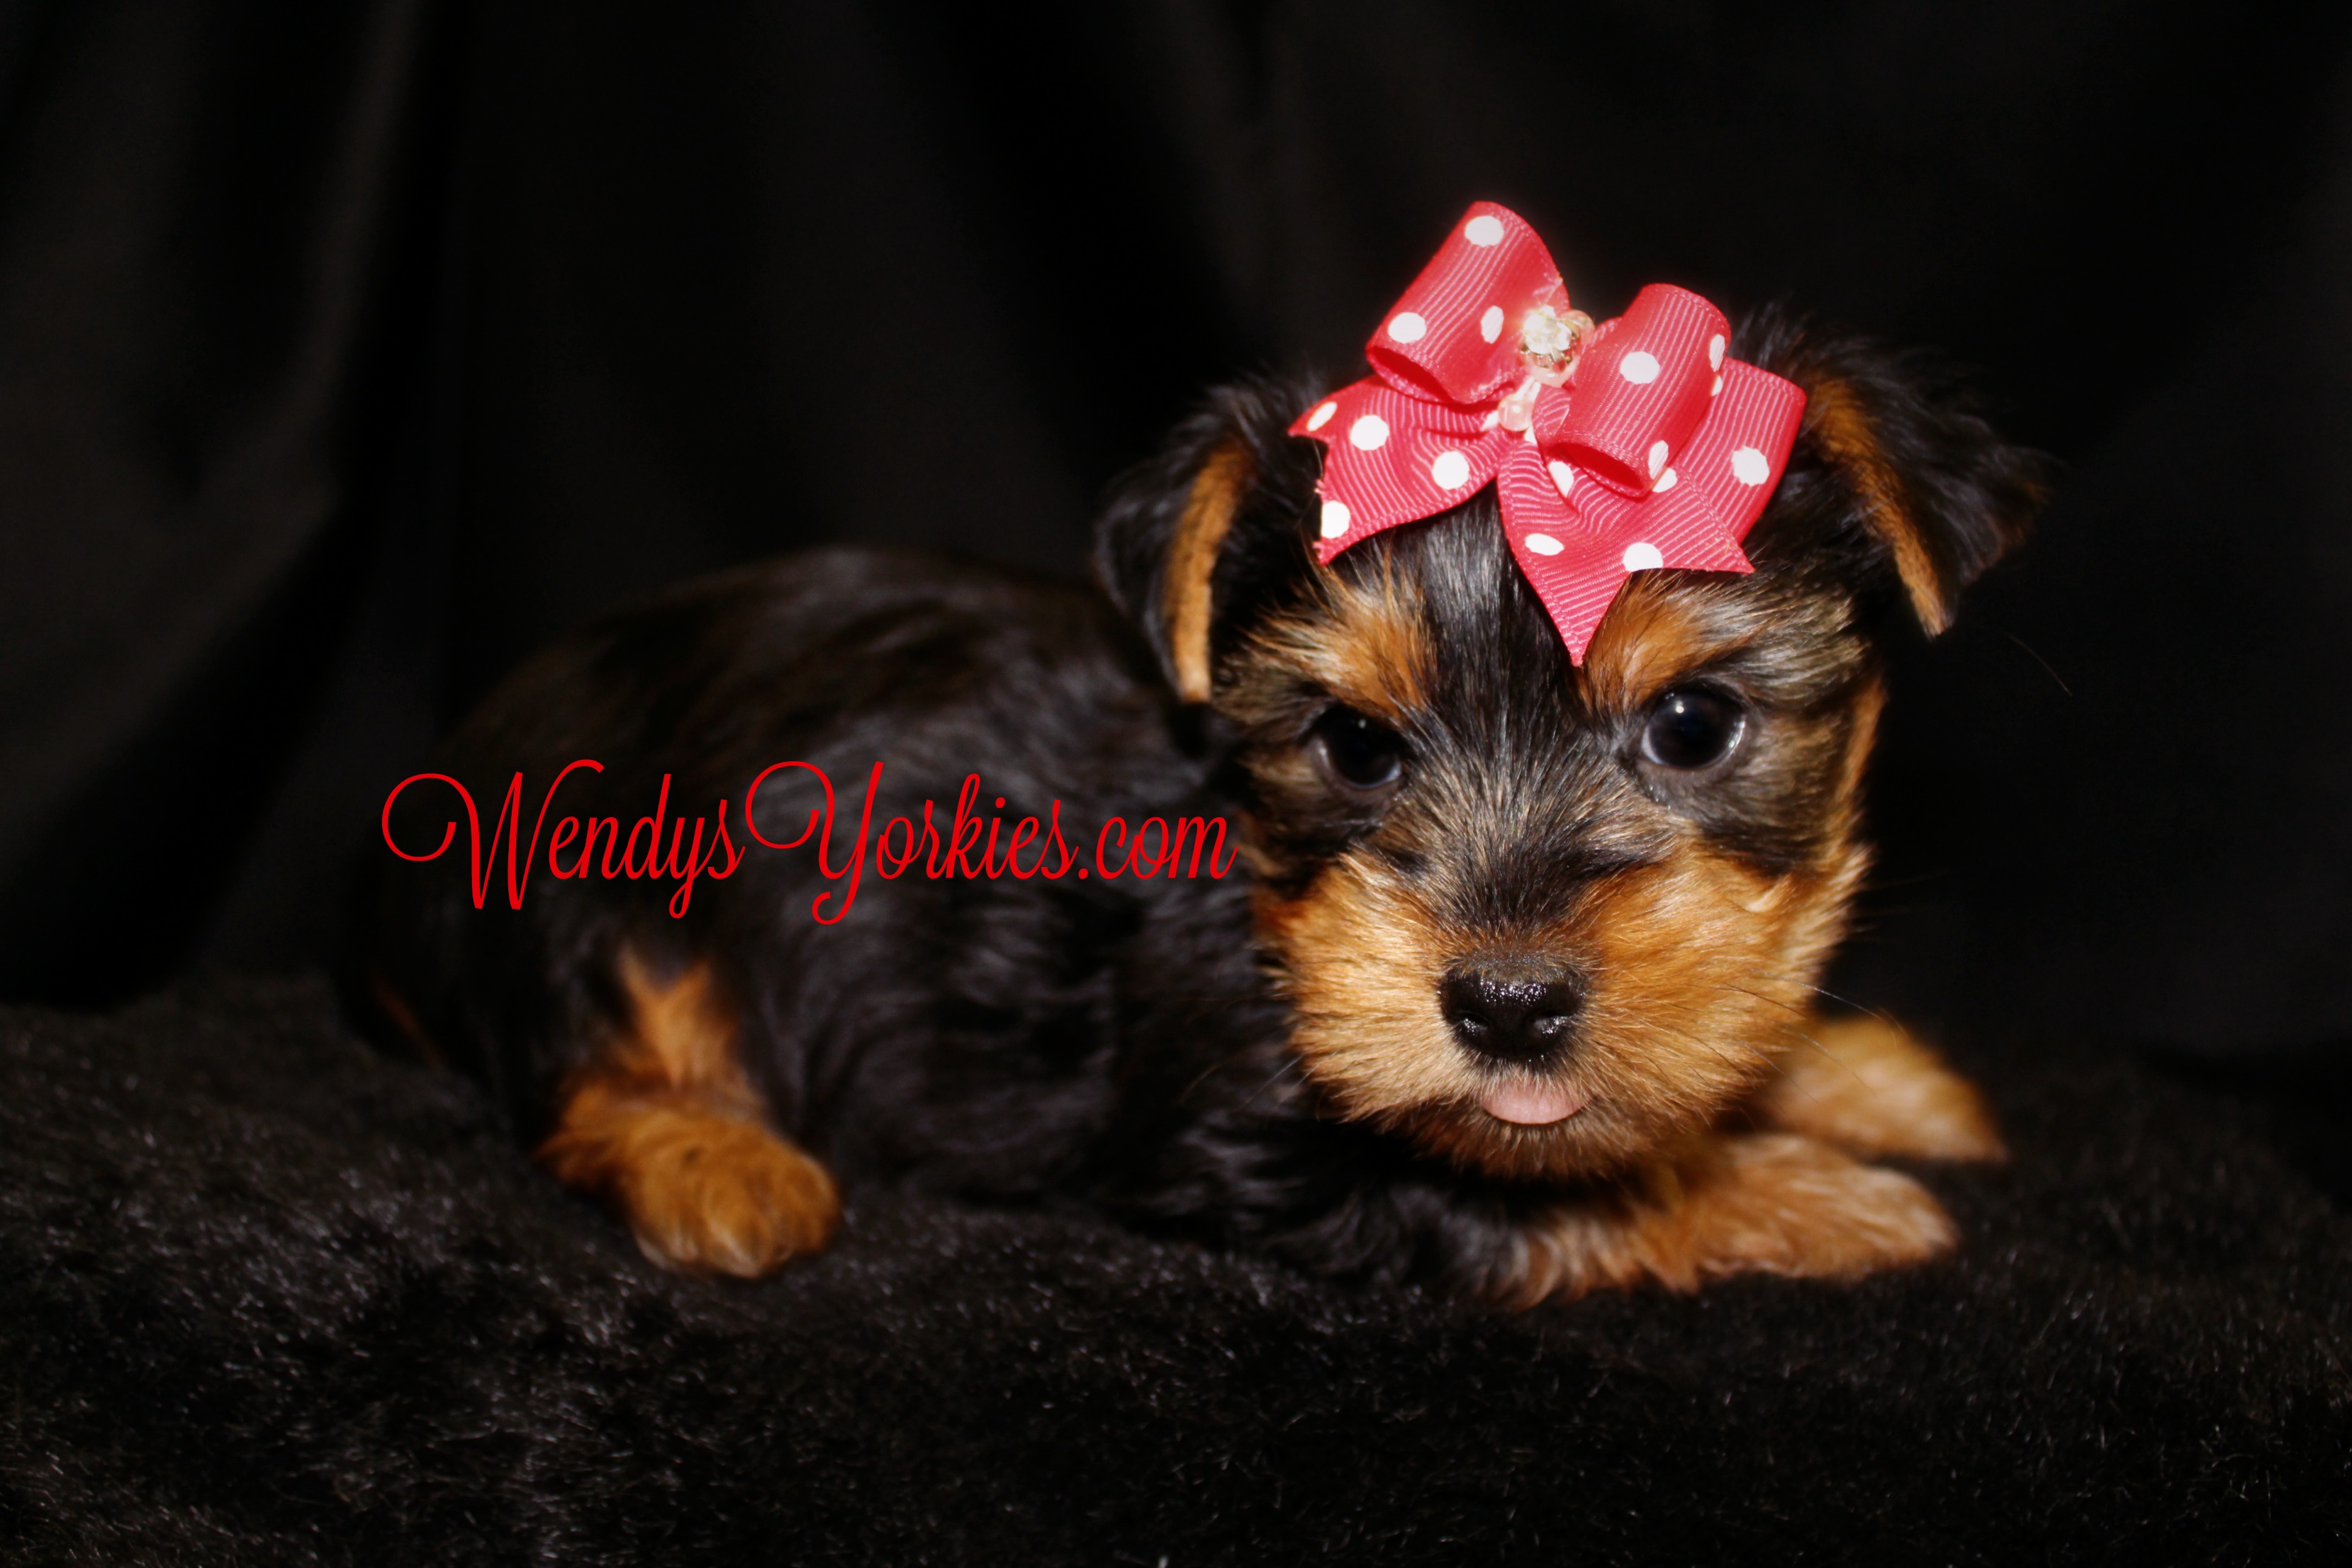 Male Yorkie puppy for sale in Texas, WendysYorkies.com, Brittney m1